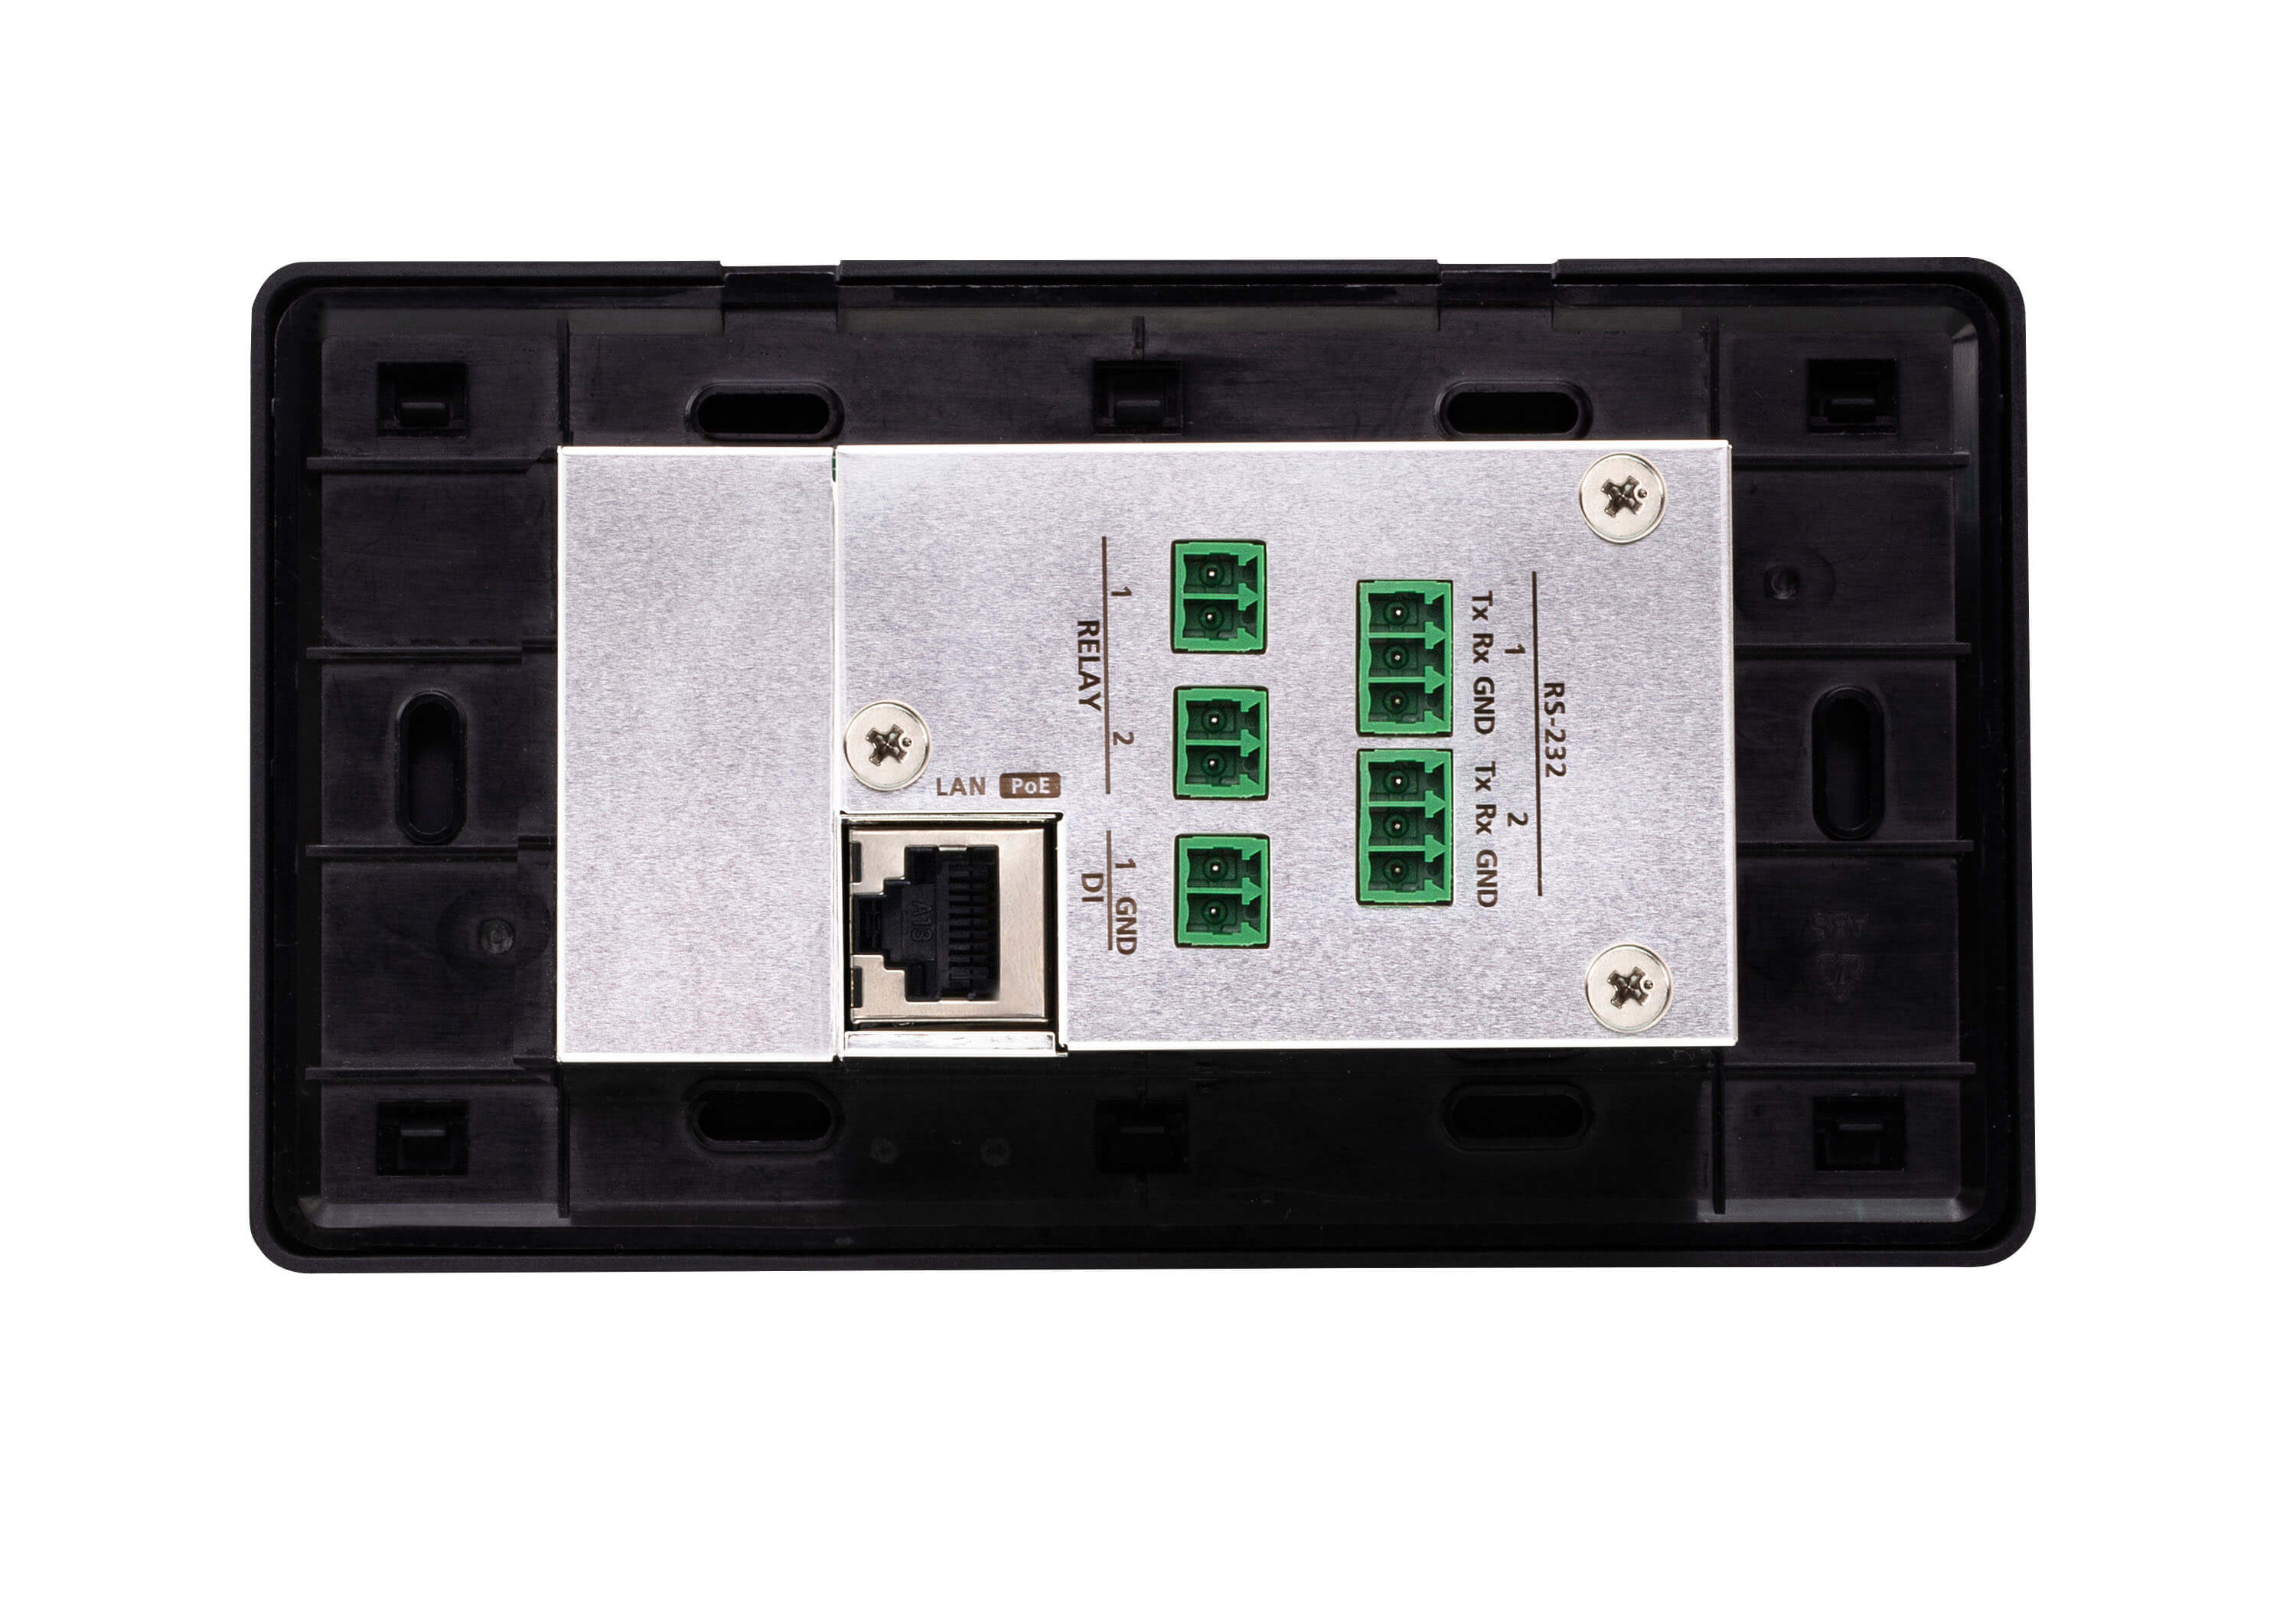 ATEN-kontrollsystem - Kontrollpanel med 12 knappar (EU, 2 switch)-4